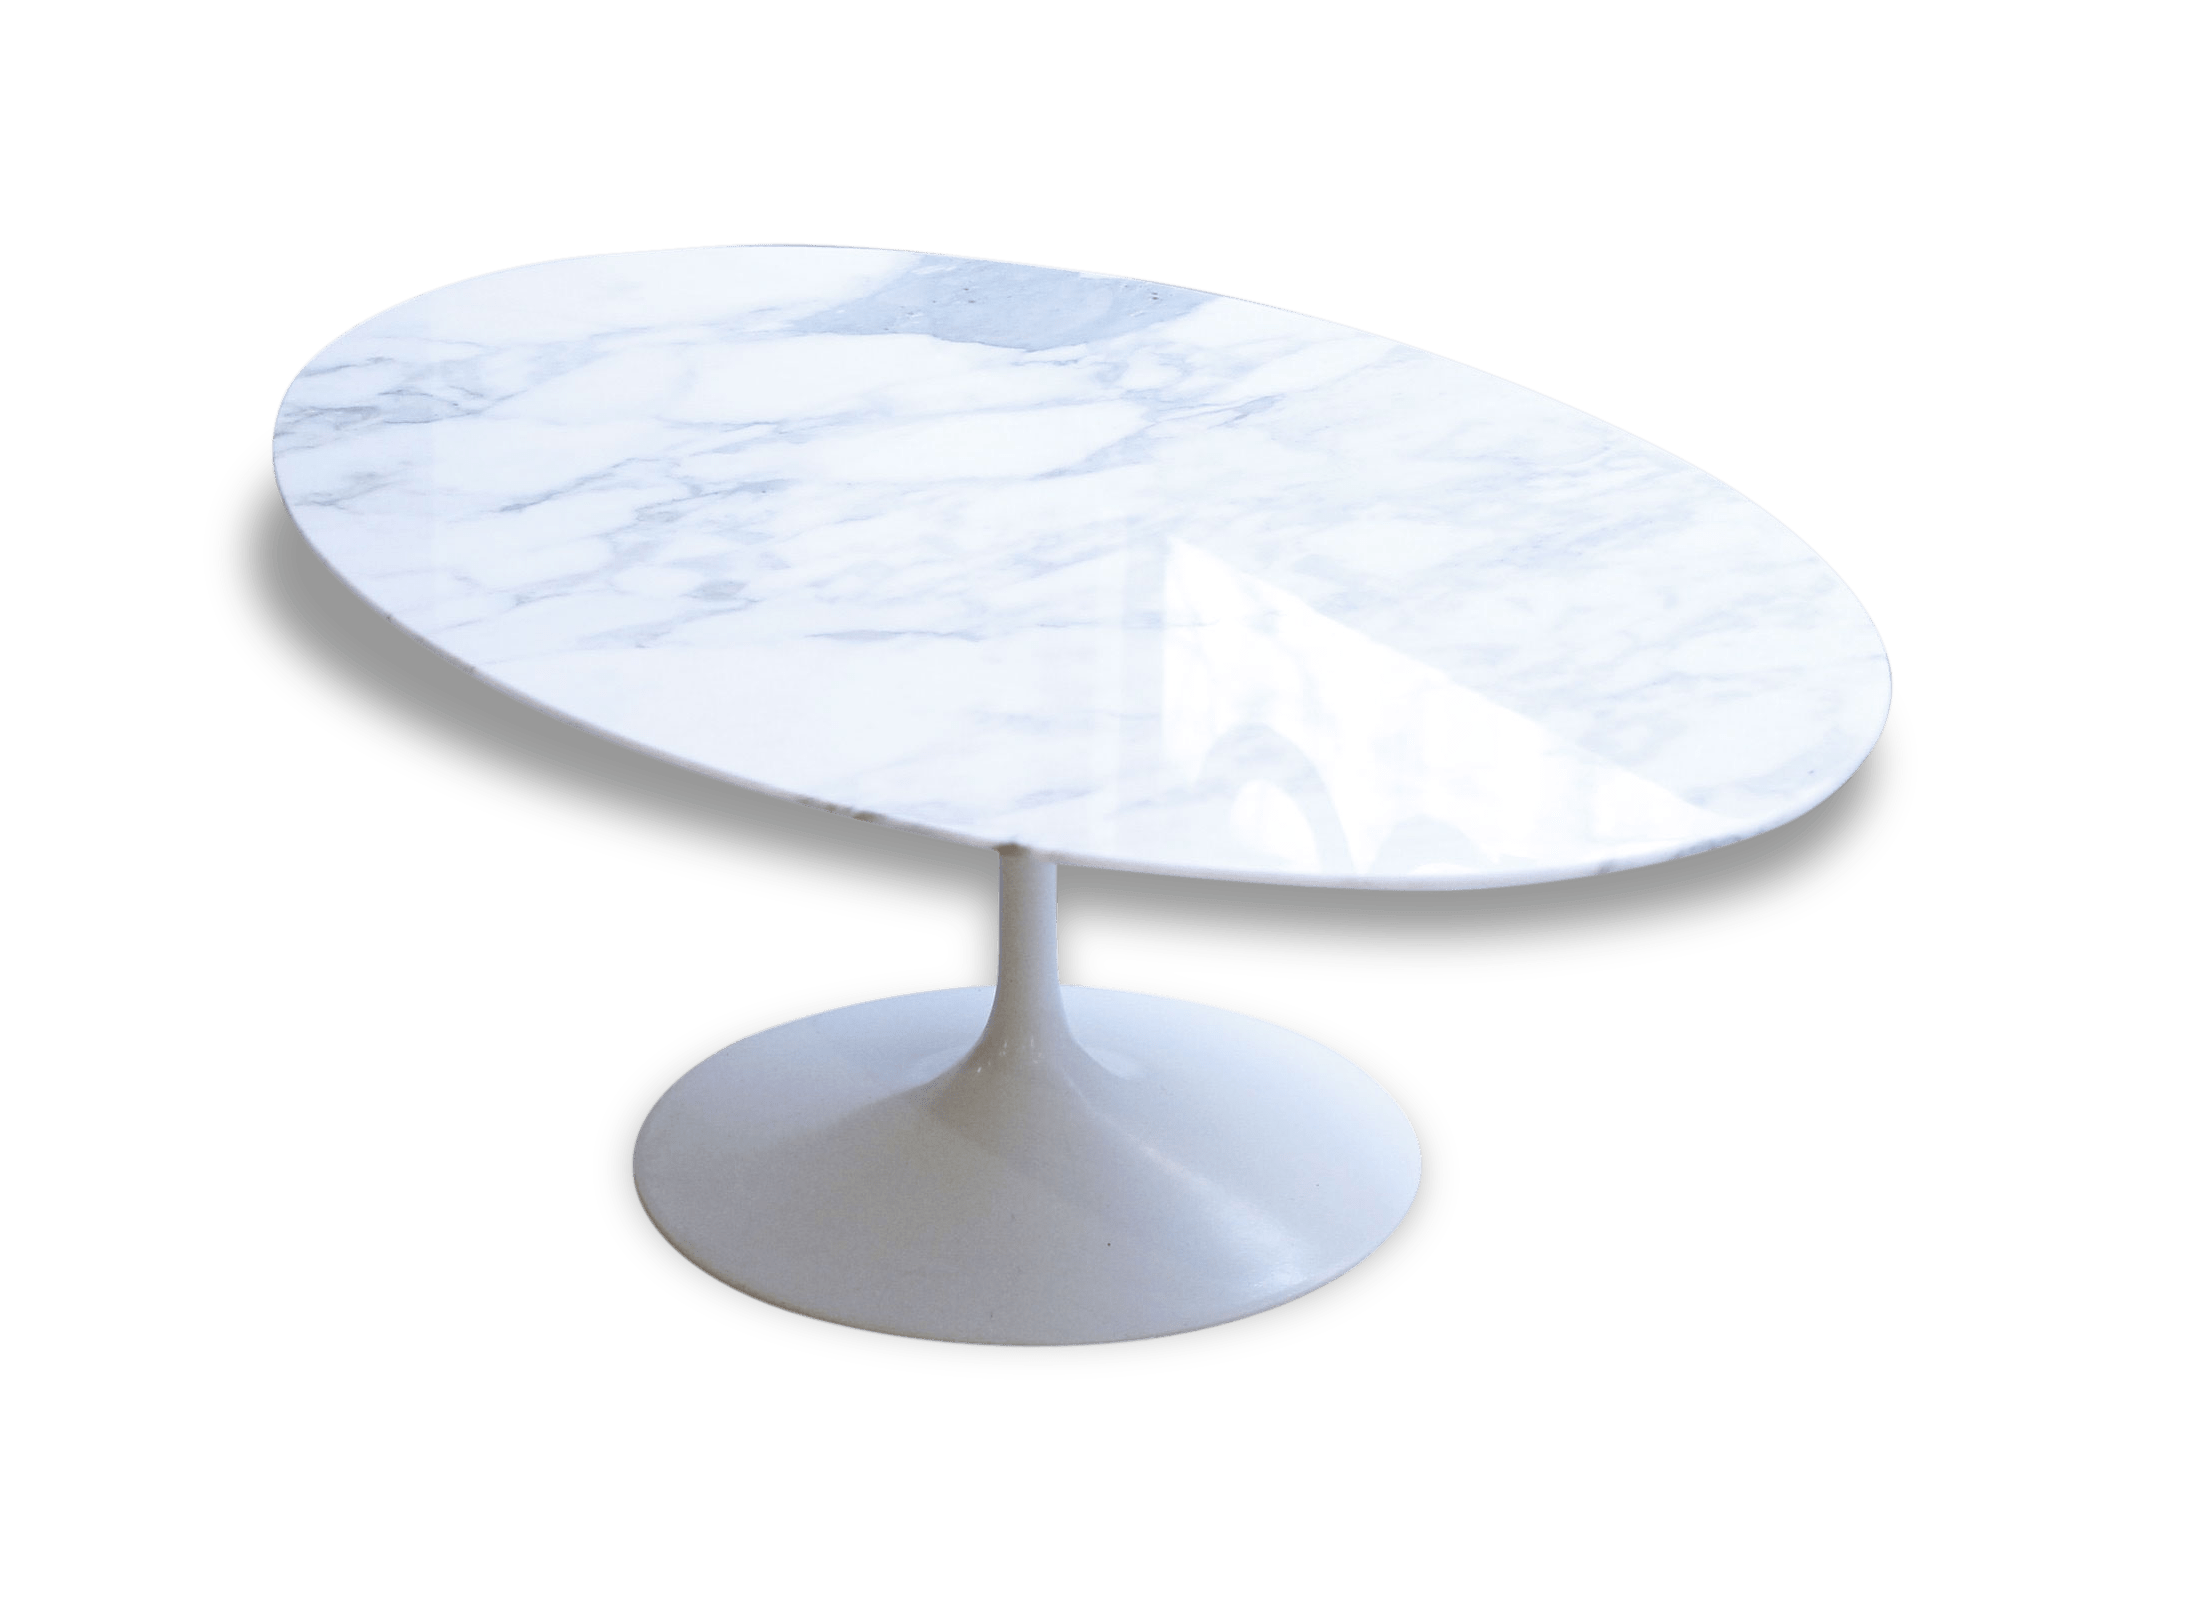 Table Marbre Knoll Table Knoll Marbre Beautiful Table Marbre Blanc On